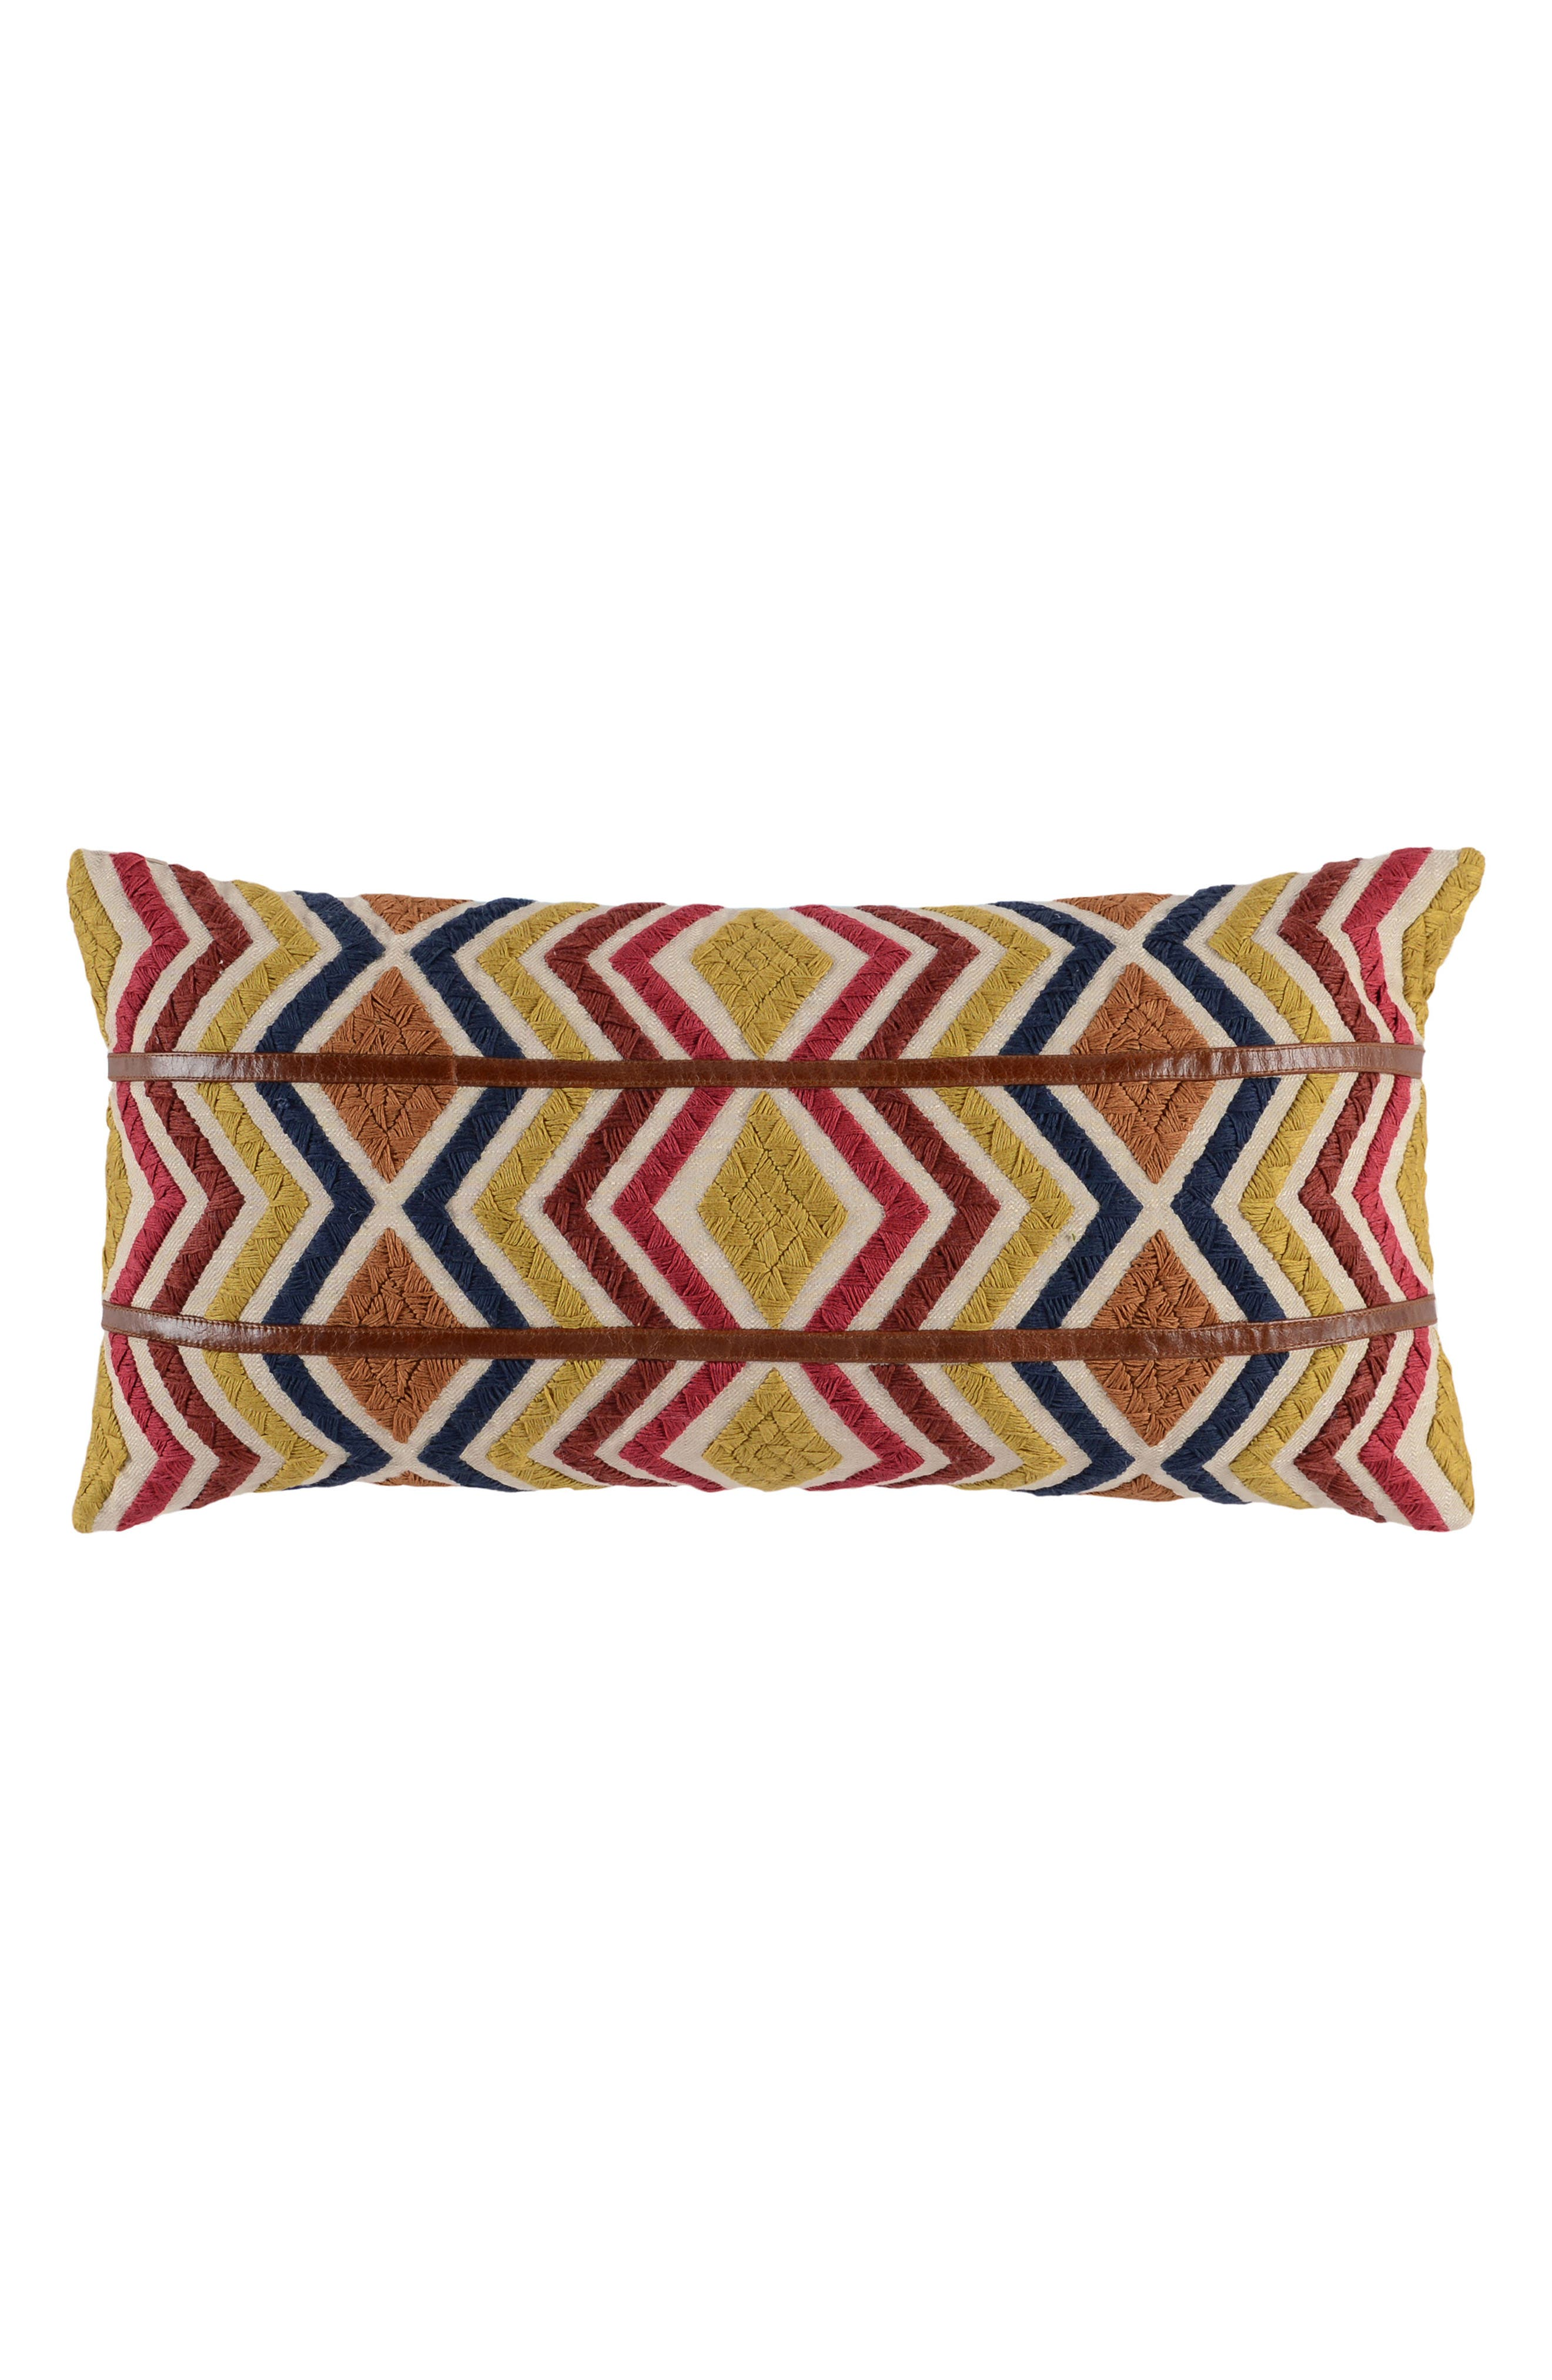 Alta Accent Pillow,                             Main thumbnail 1, color,                             YELLOW/ BROWN/ RED